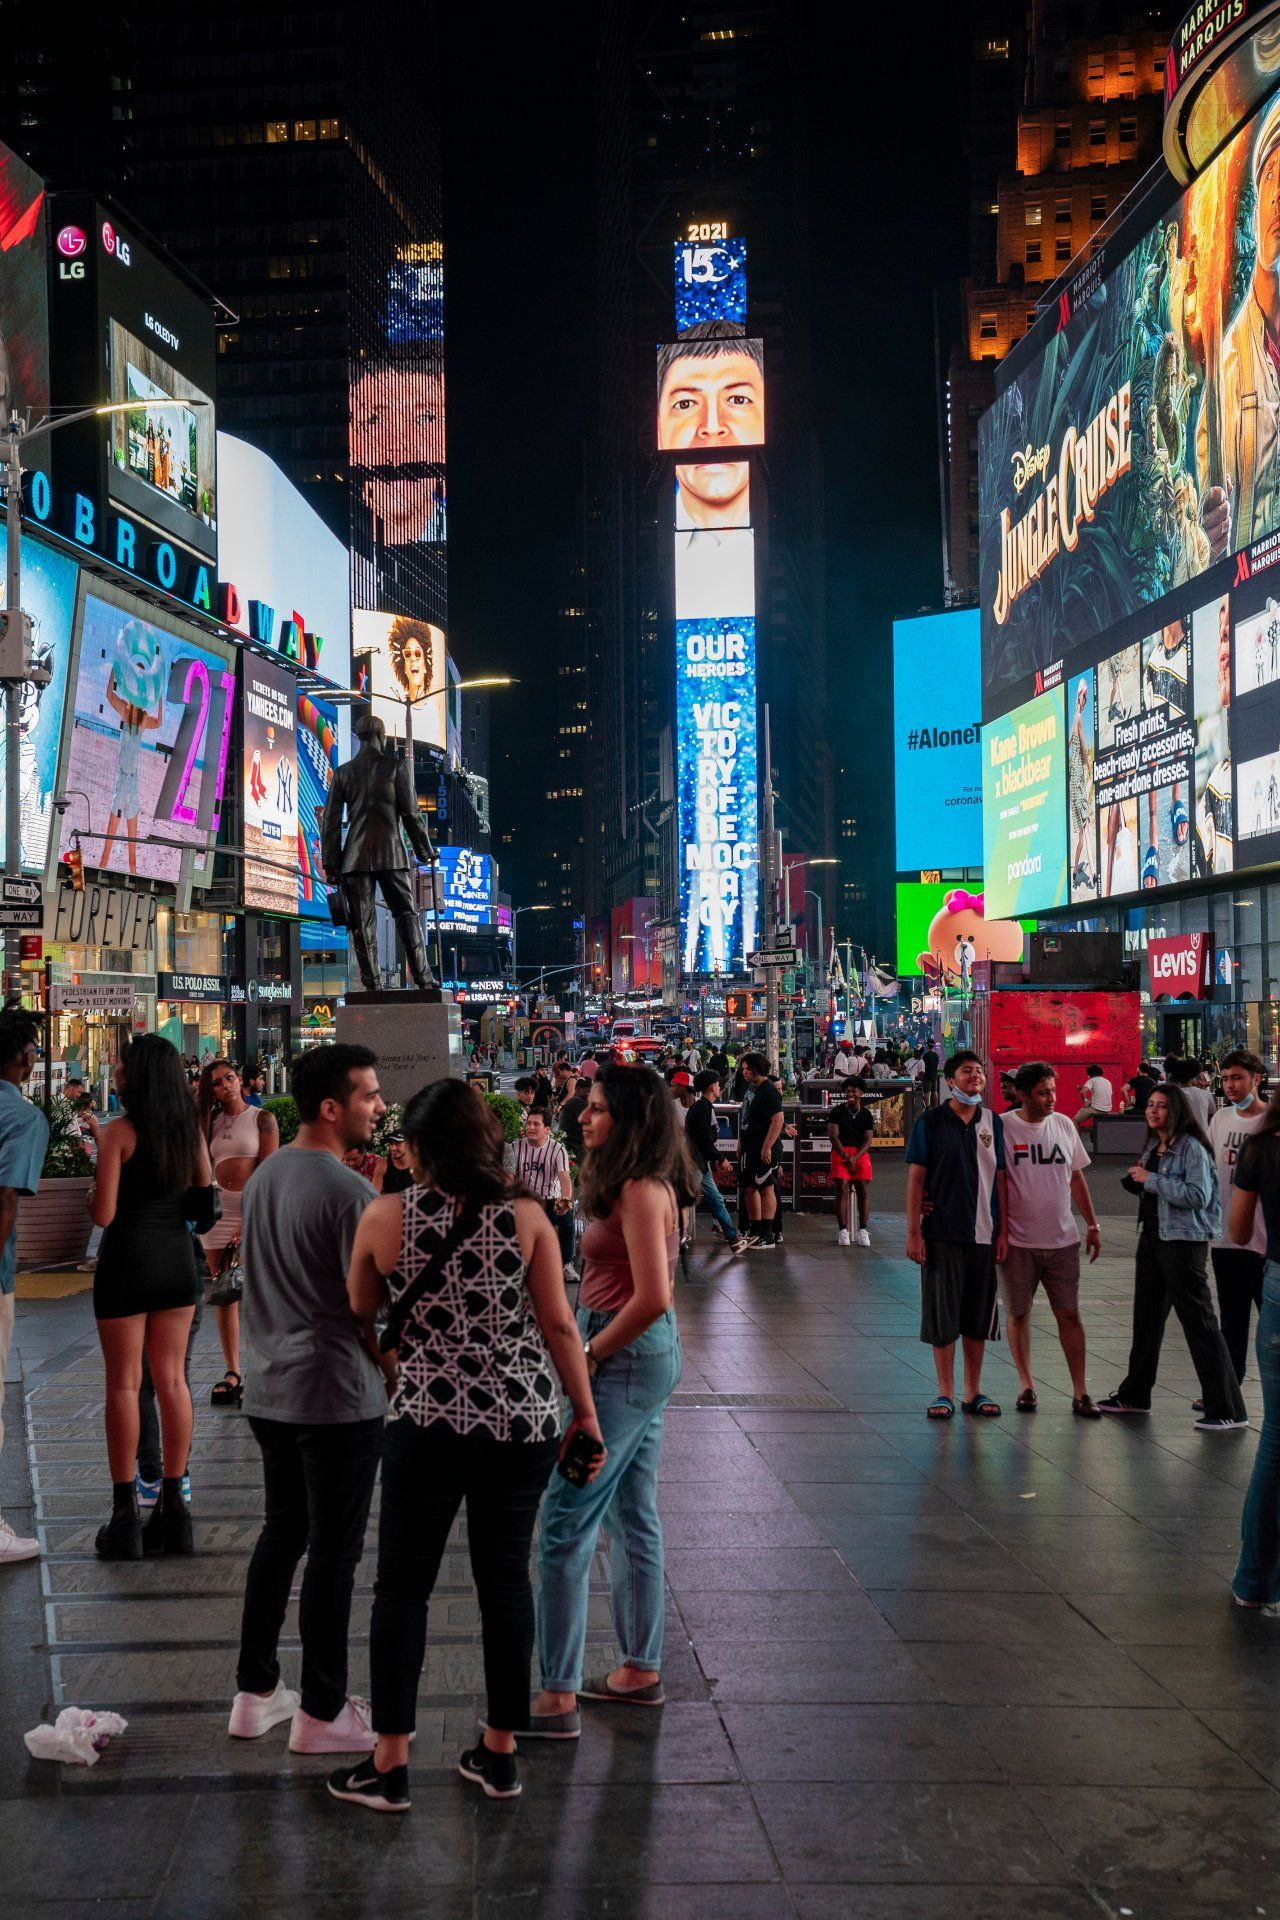 Turkey airs messages on Times Square billboards to mark 2016 coup bid - Page 4